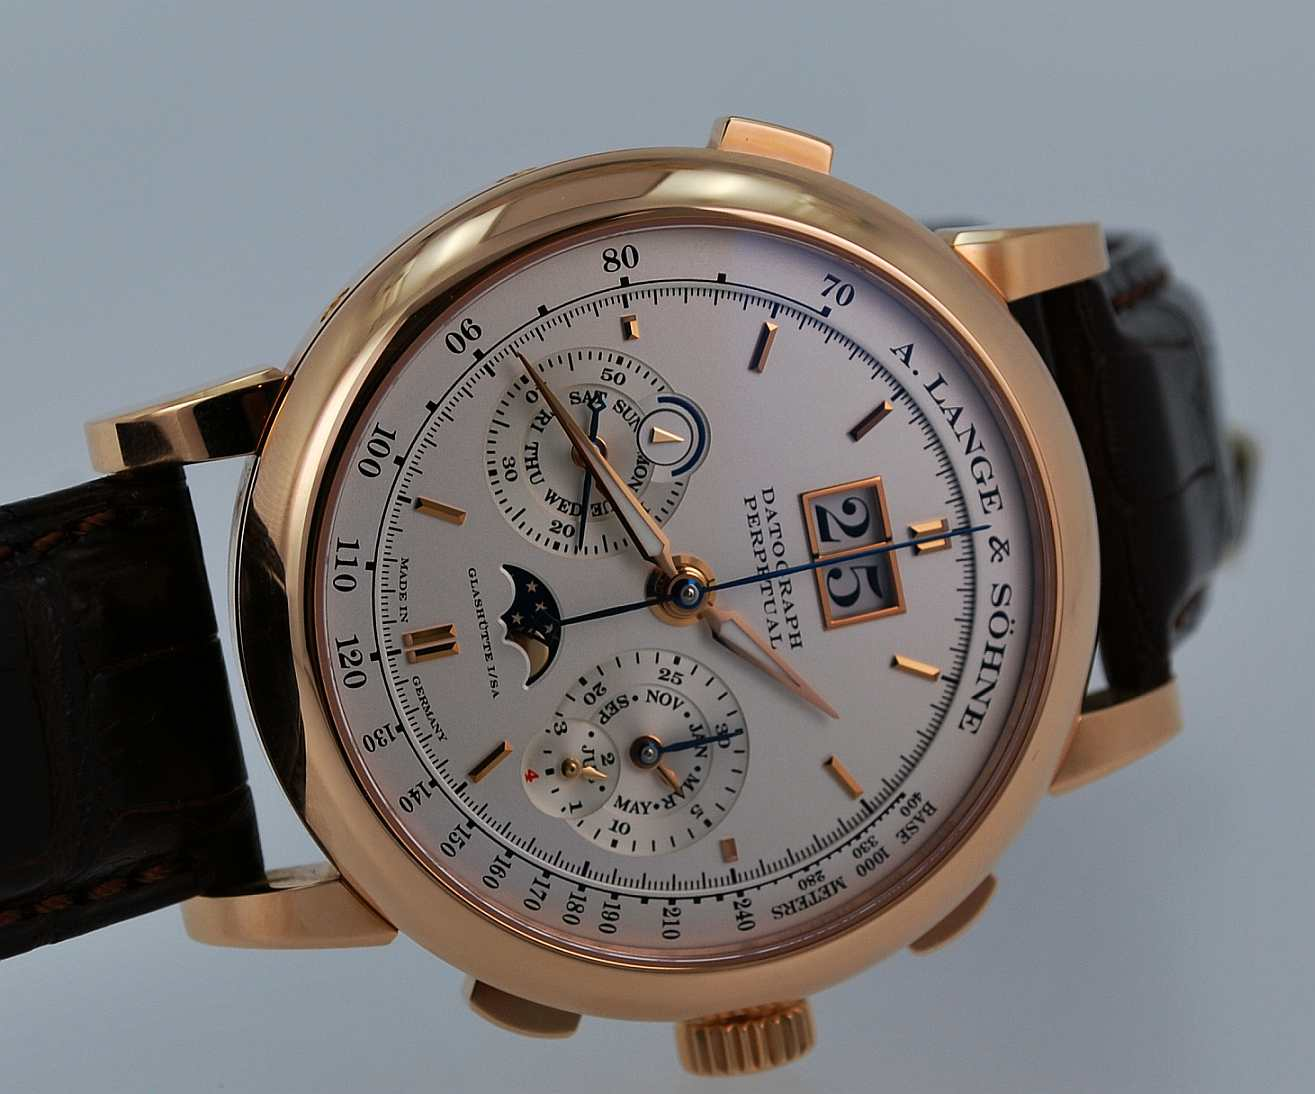 Wristwatch pictures: Lange Datograph perpetual